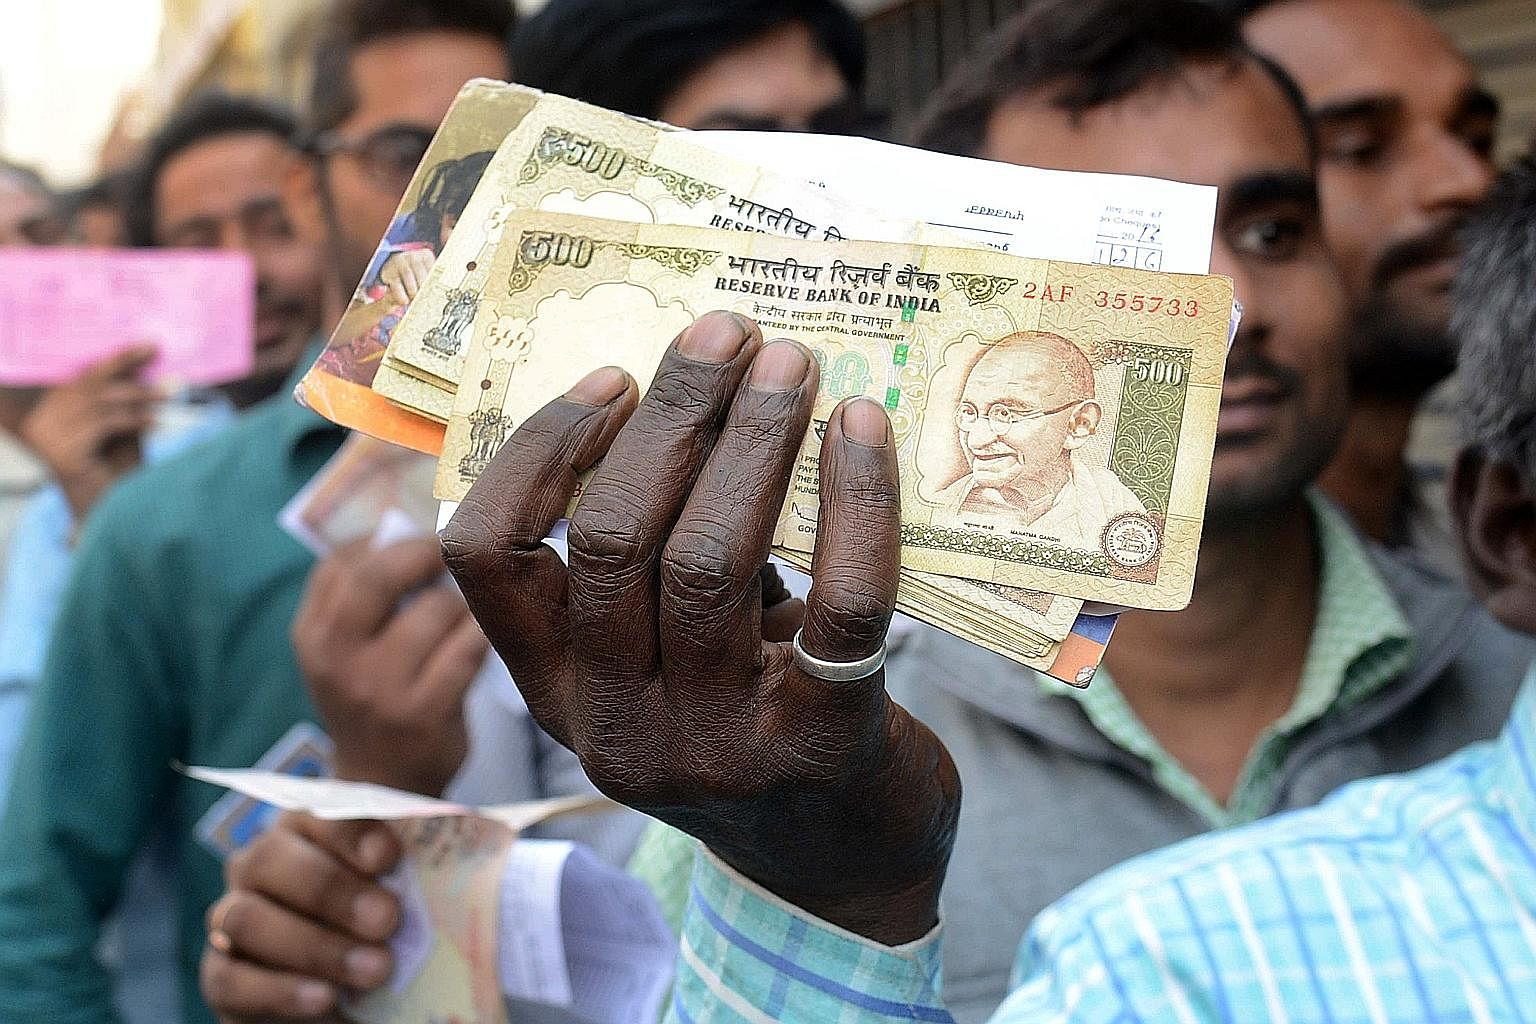 In November, Mr Modi announced the demonetisation of 500- and 1,000-rupee banknotes, amove that some have called his biggest gamble yet and perhaps his riskiest because of the chaos it has caused.